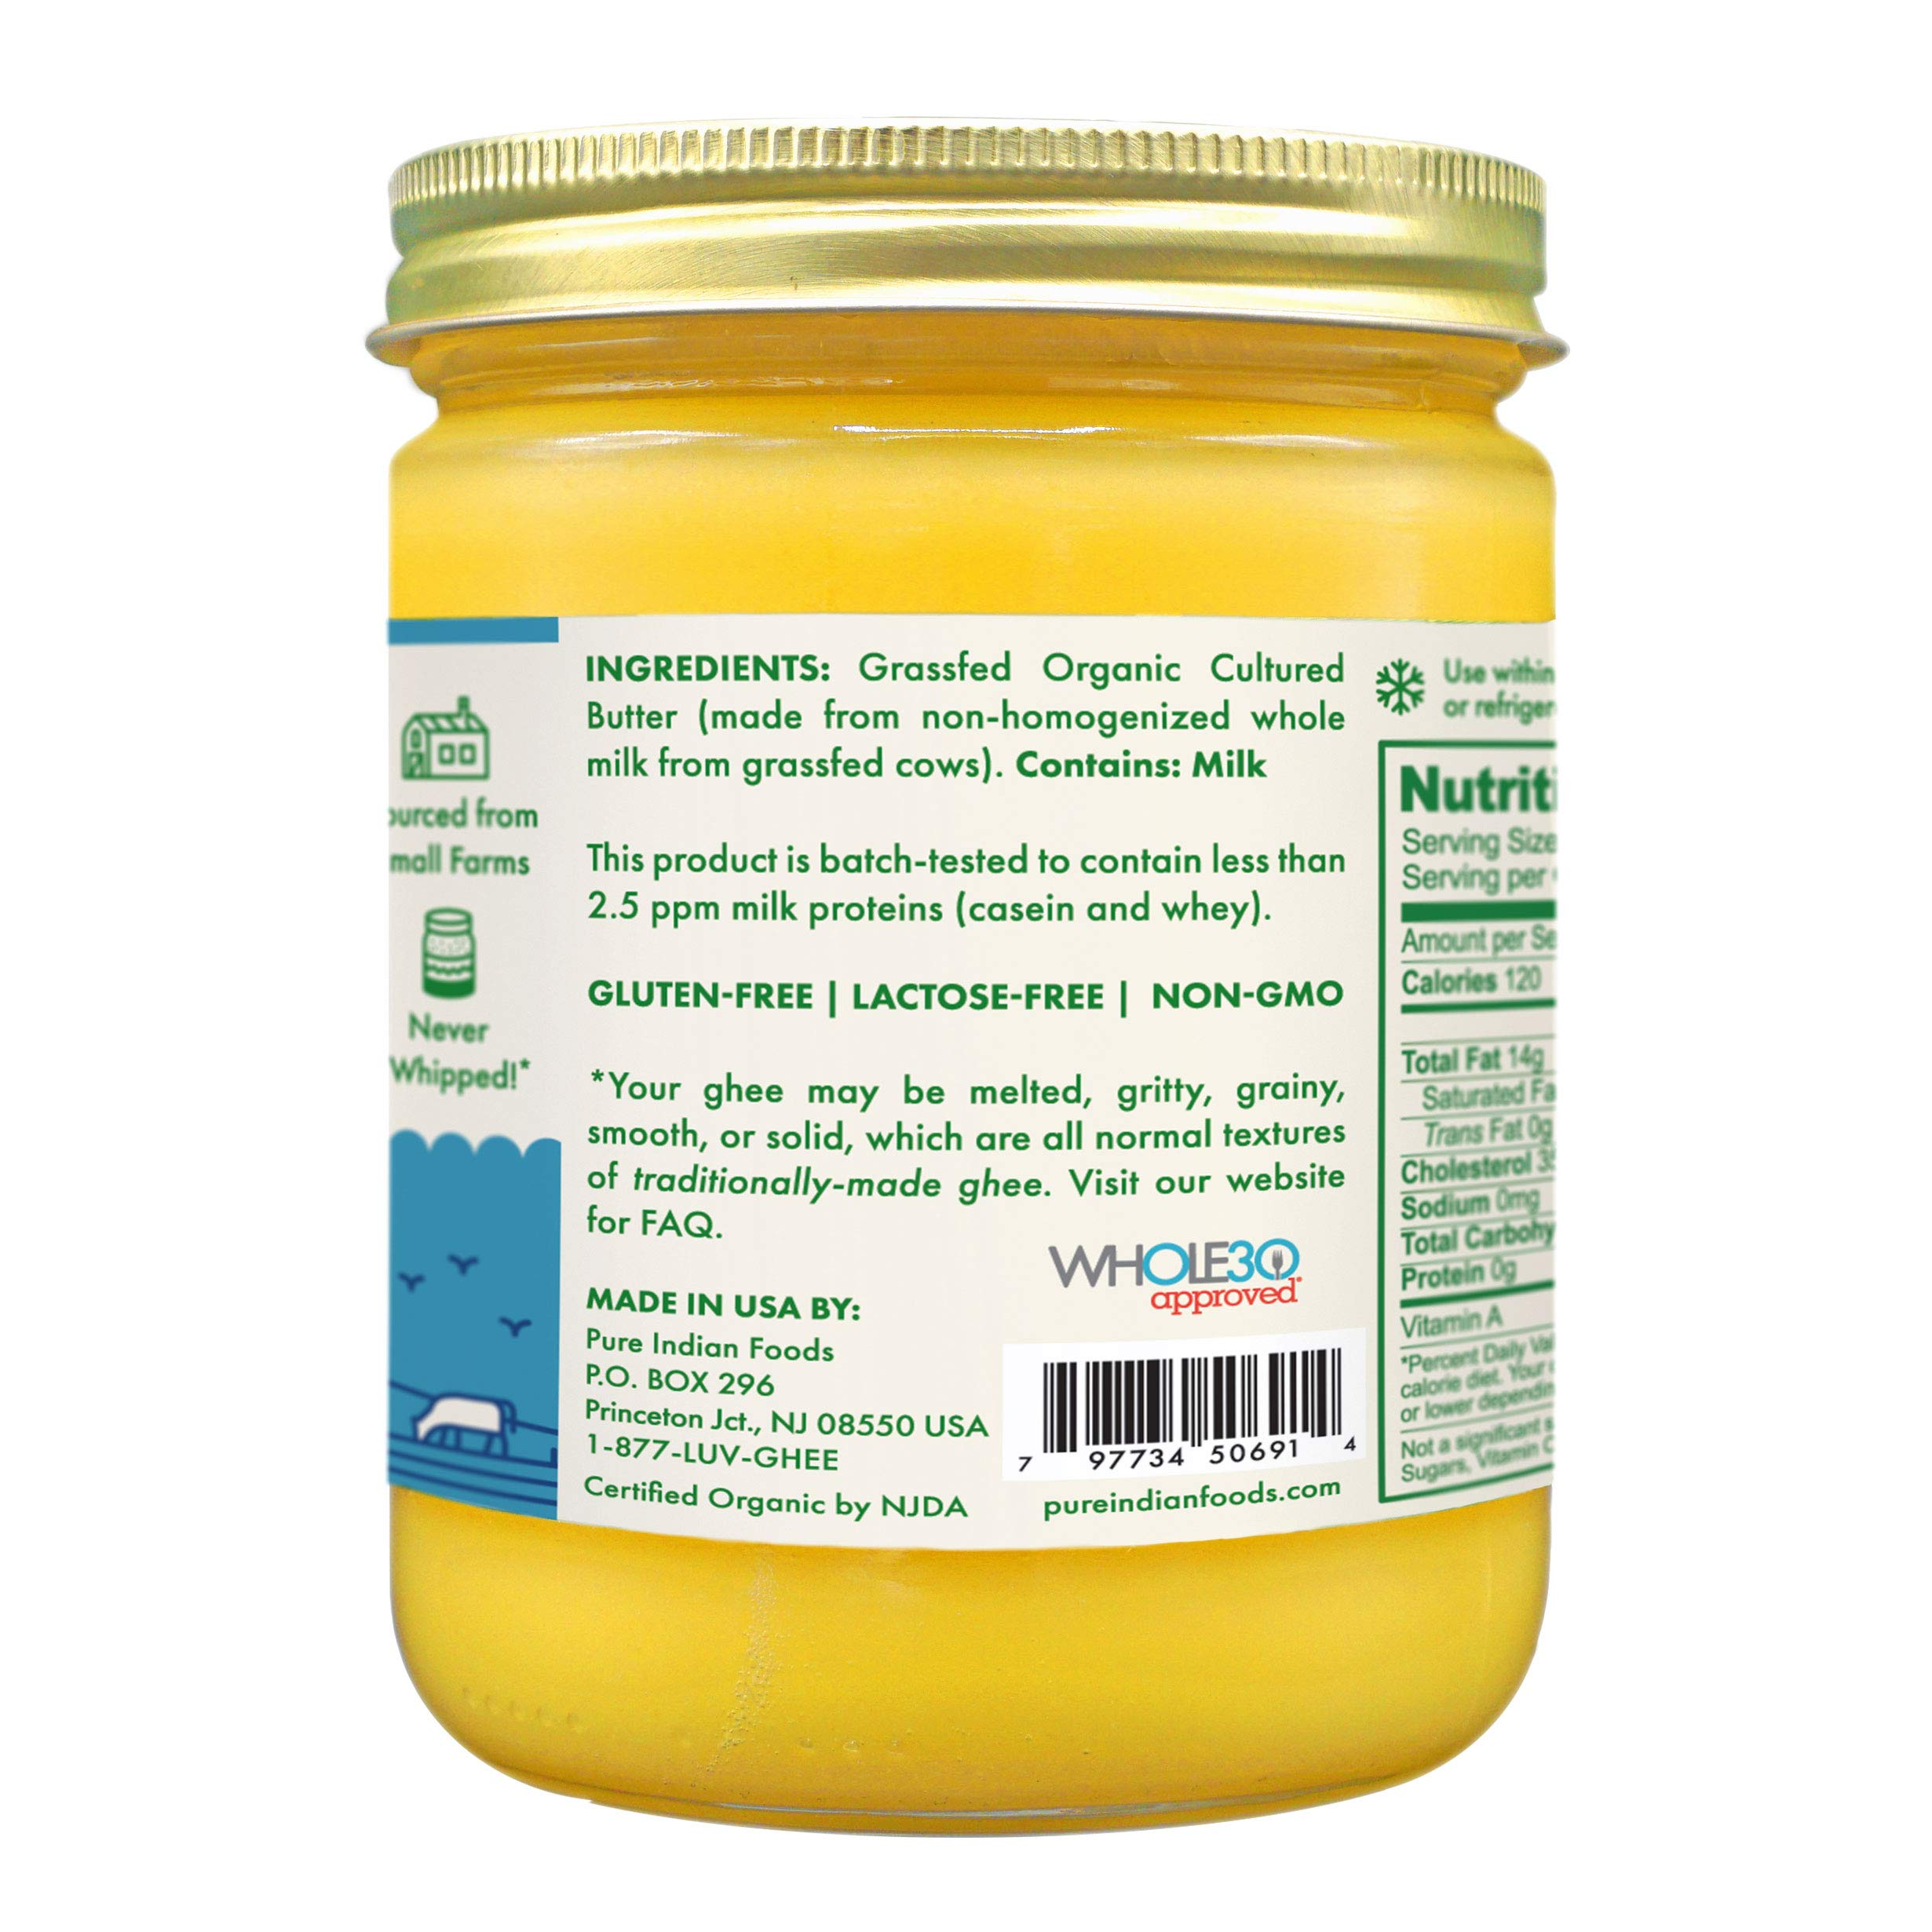 Grassfed Organic Cultured Ghee 14 Oz. - Pure Indian Foods(R) Brand by Pure Indian Foods (Image #2)